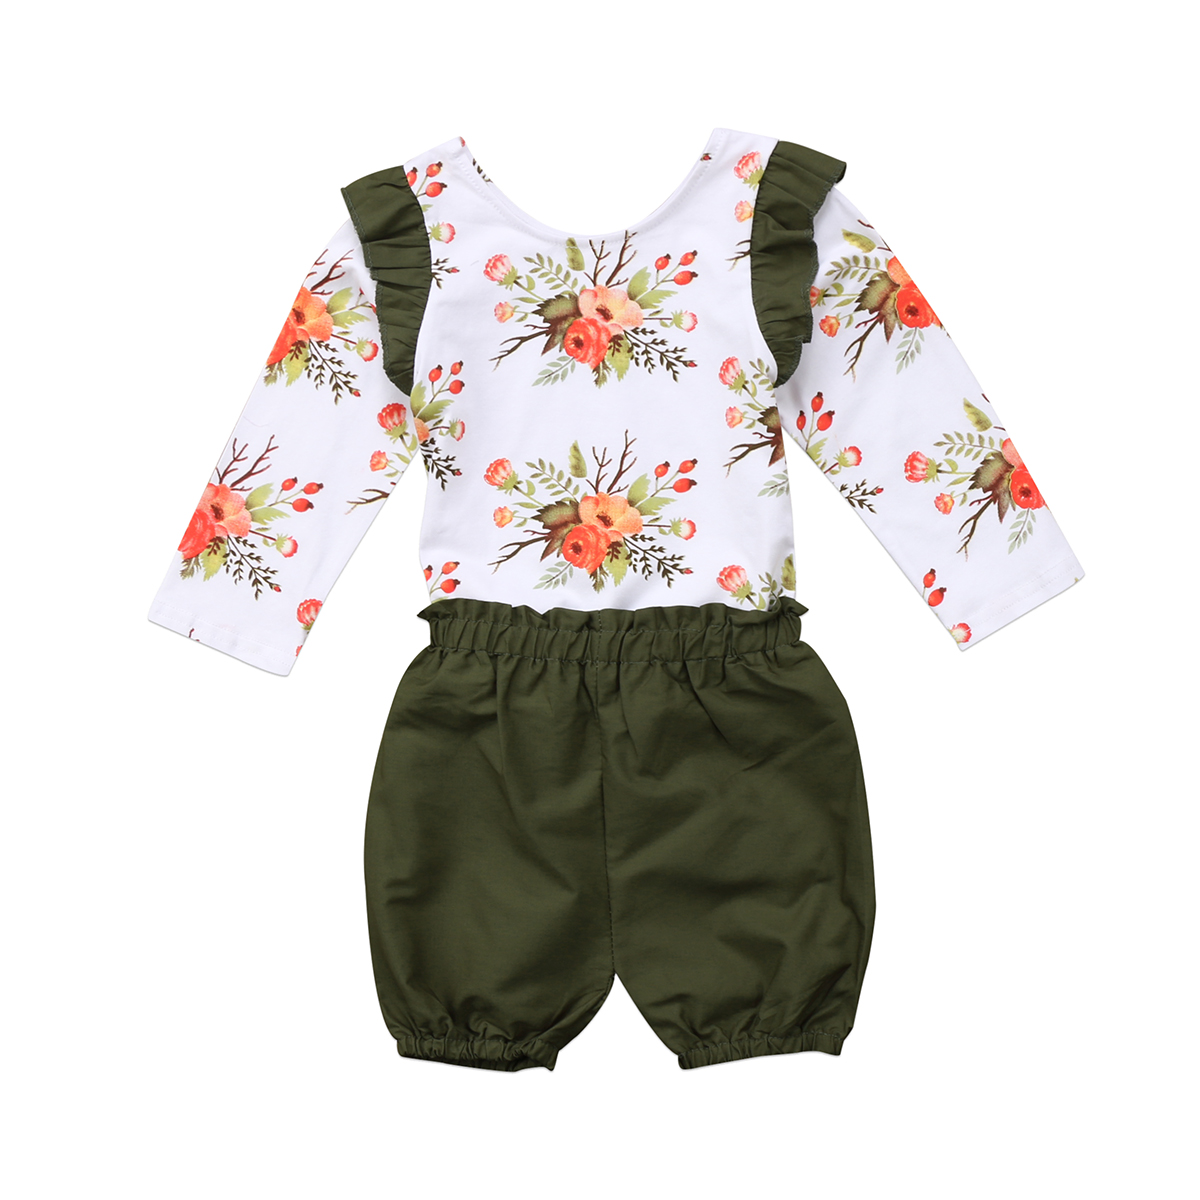 Girls ROYAL GEM boutique outfit 3T 4T 6 NWT cloth flower tiered ruffle swing top